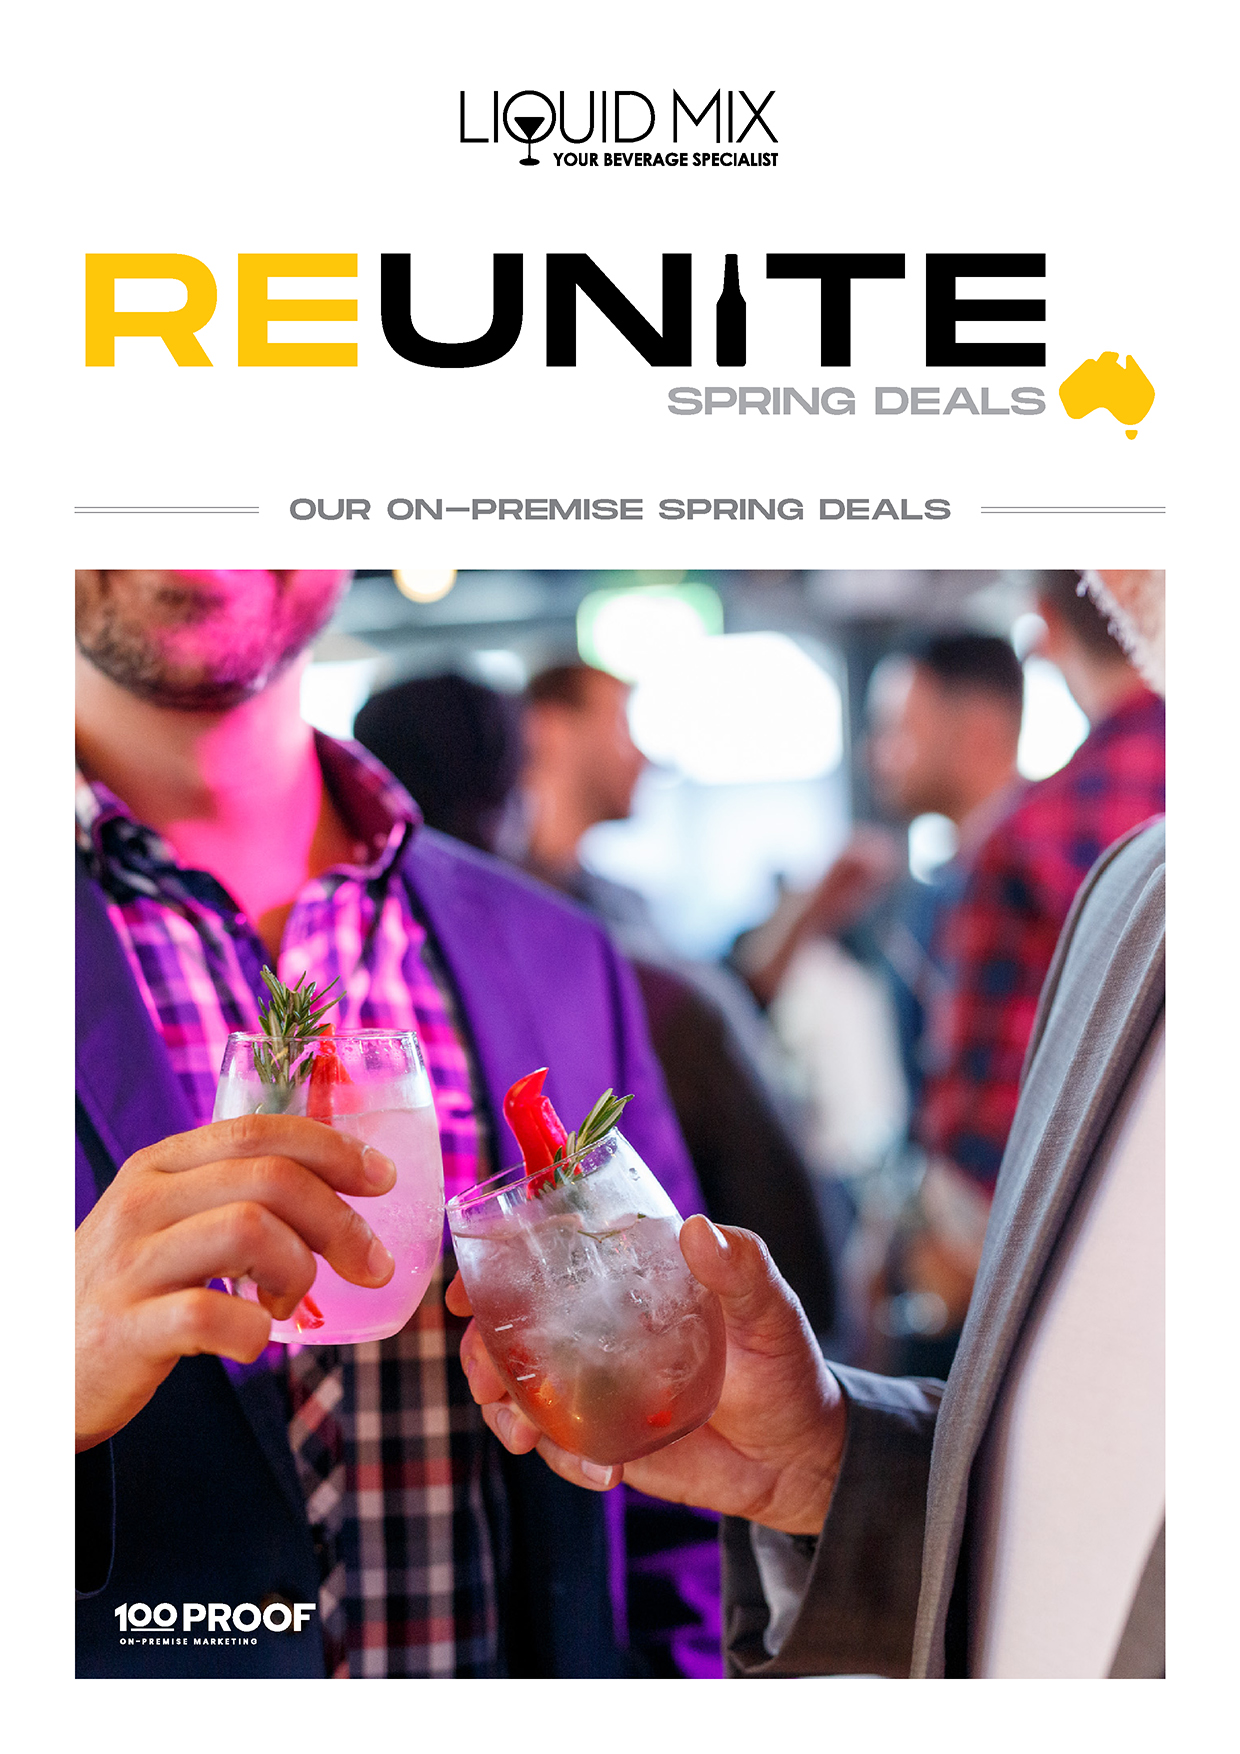 To see some great deals from our latest Reunite catalogue please contact your Liquid Mix rep